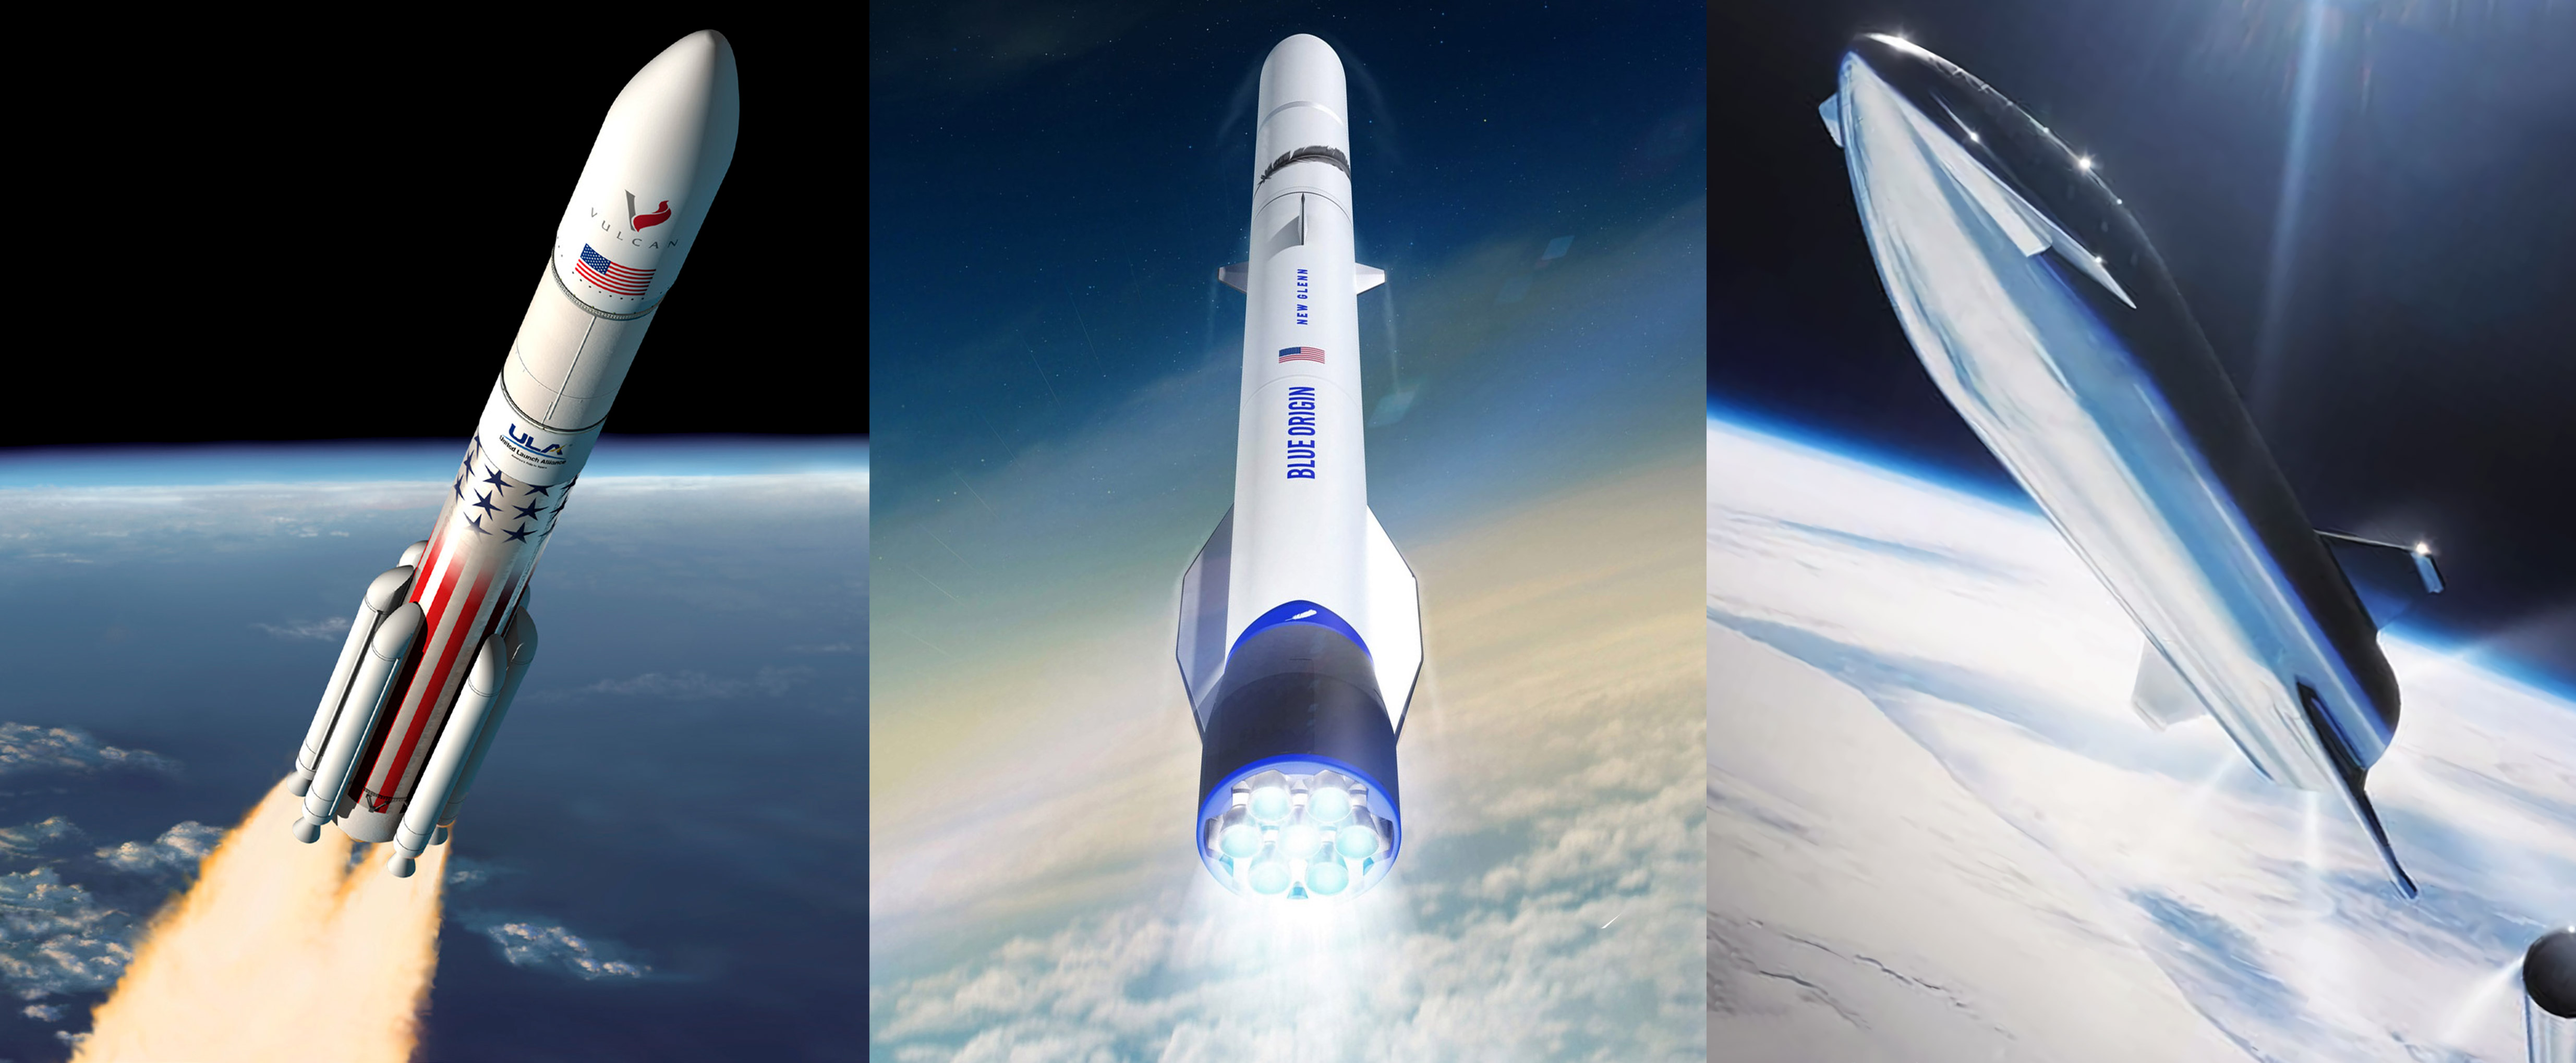 Vulcan Heavy New Glenn Starship renders (ULA – Blue Origin – SpaceX) 1